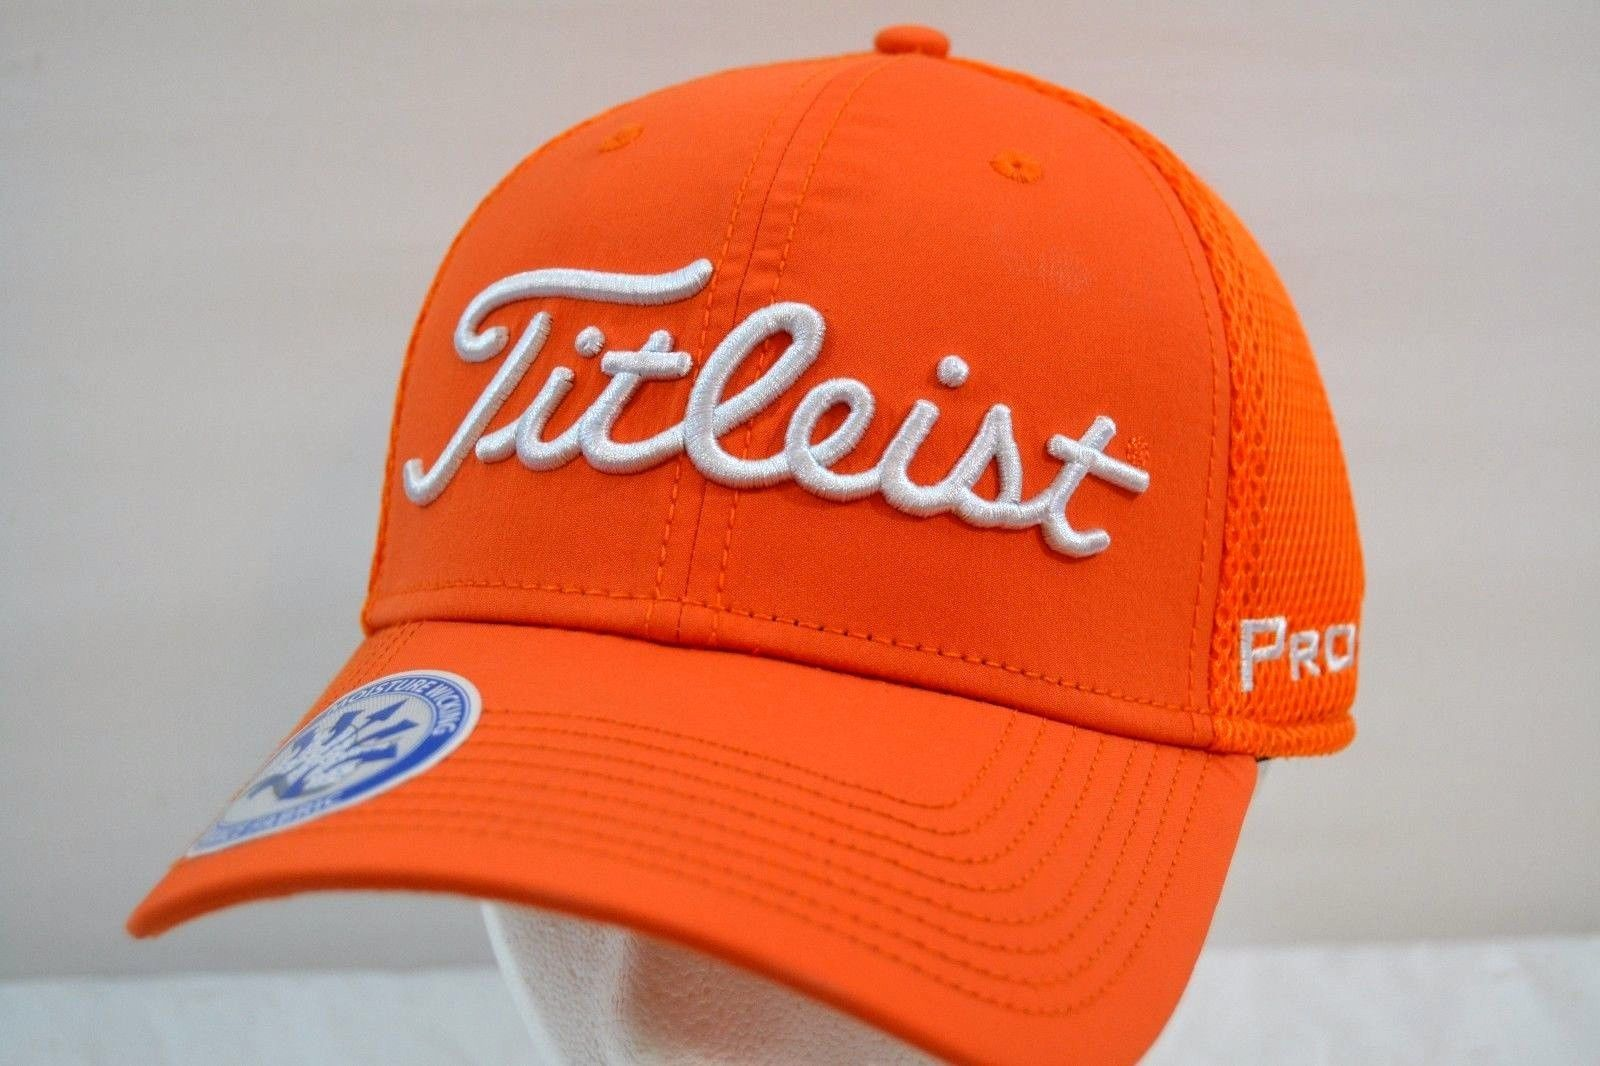 Titleist Golf Sport Mesh Orange White Baseball Cap NWT Flex Fit M L ... 4a8c76170a9